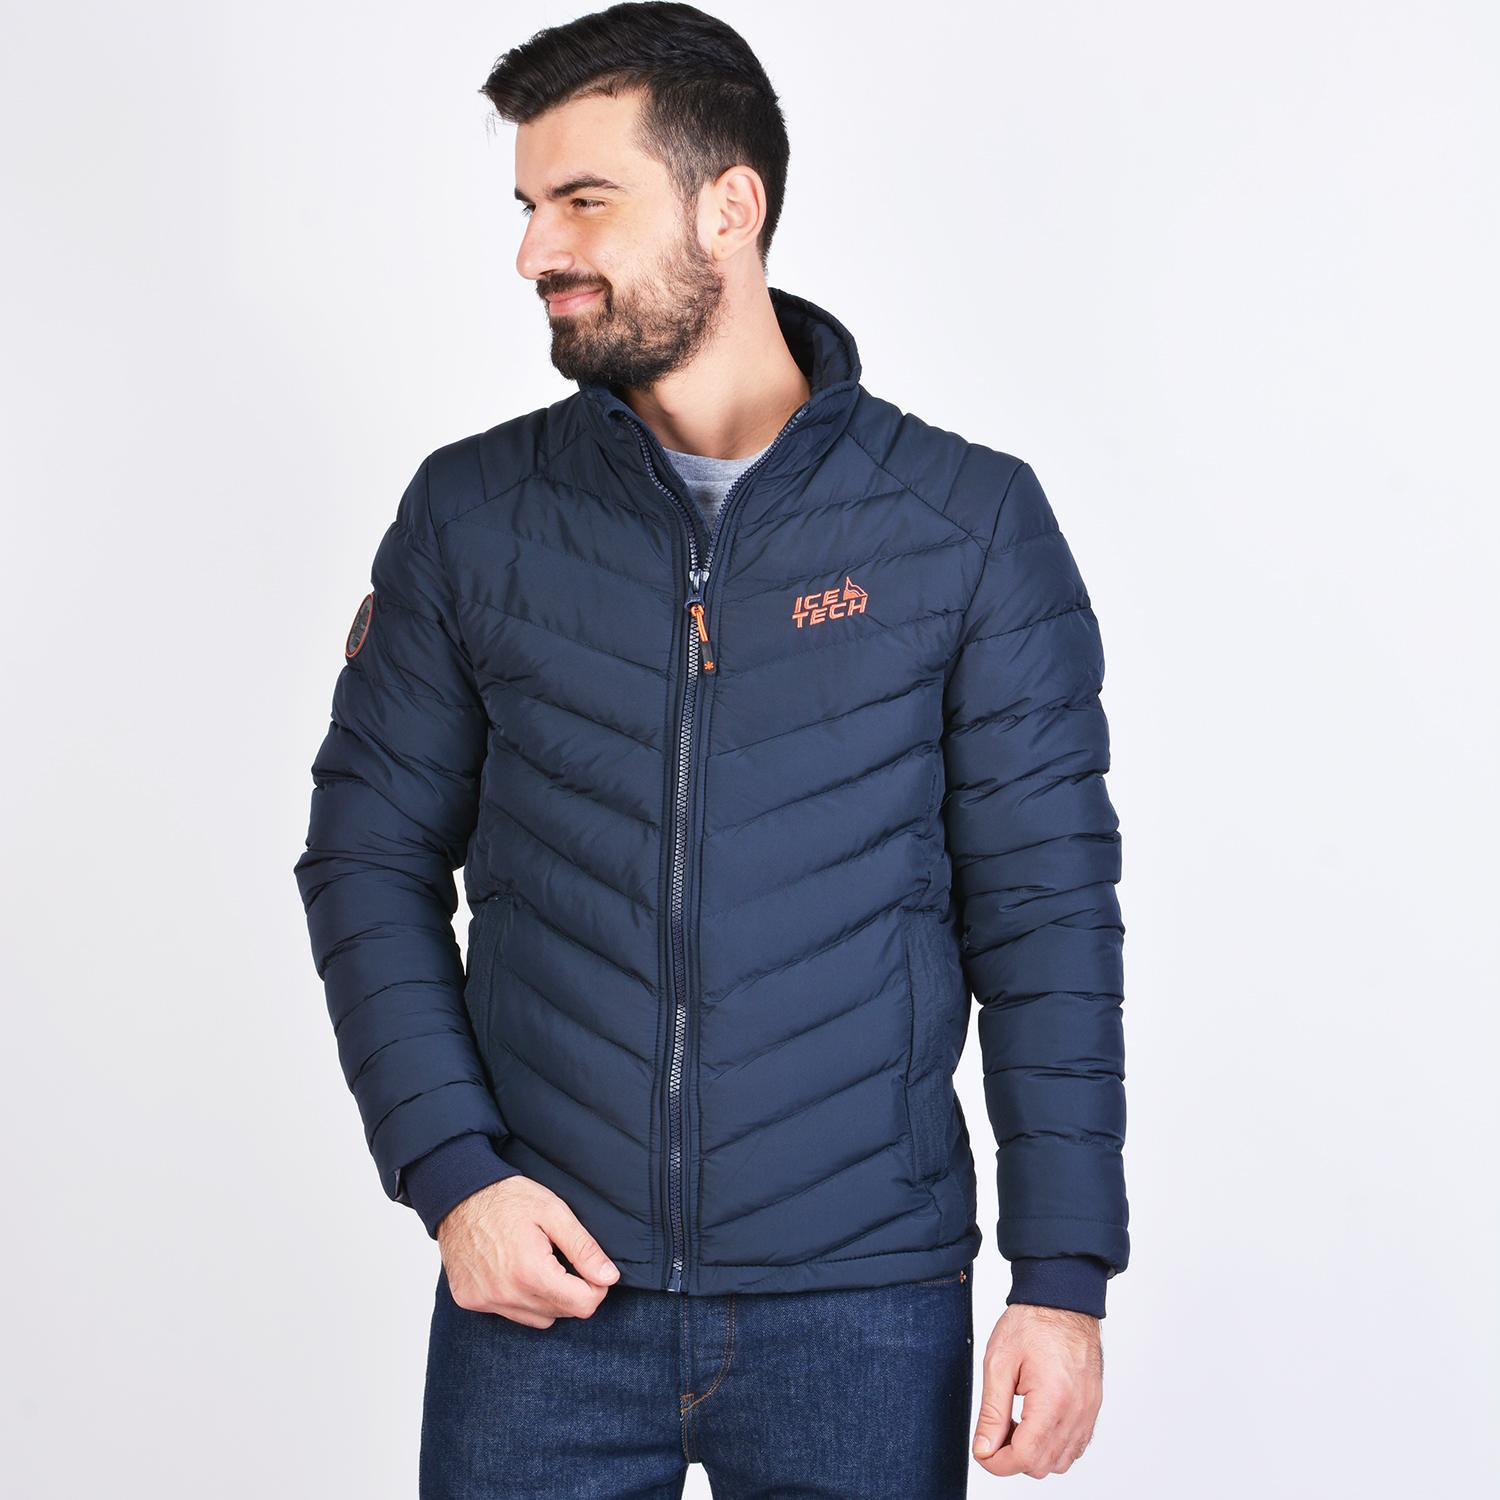 Ice Tech MENS JACKETS (9000042516_1629)